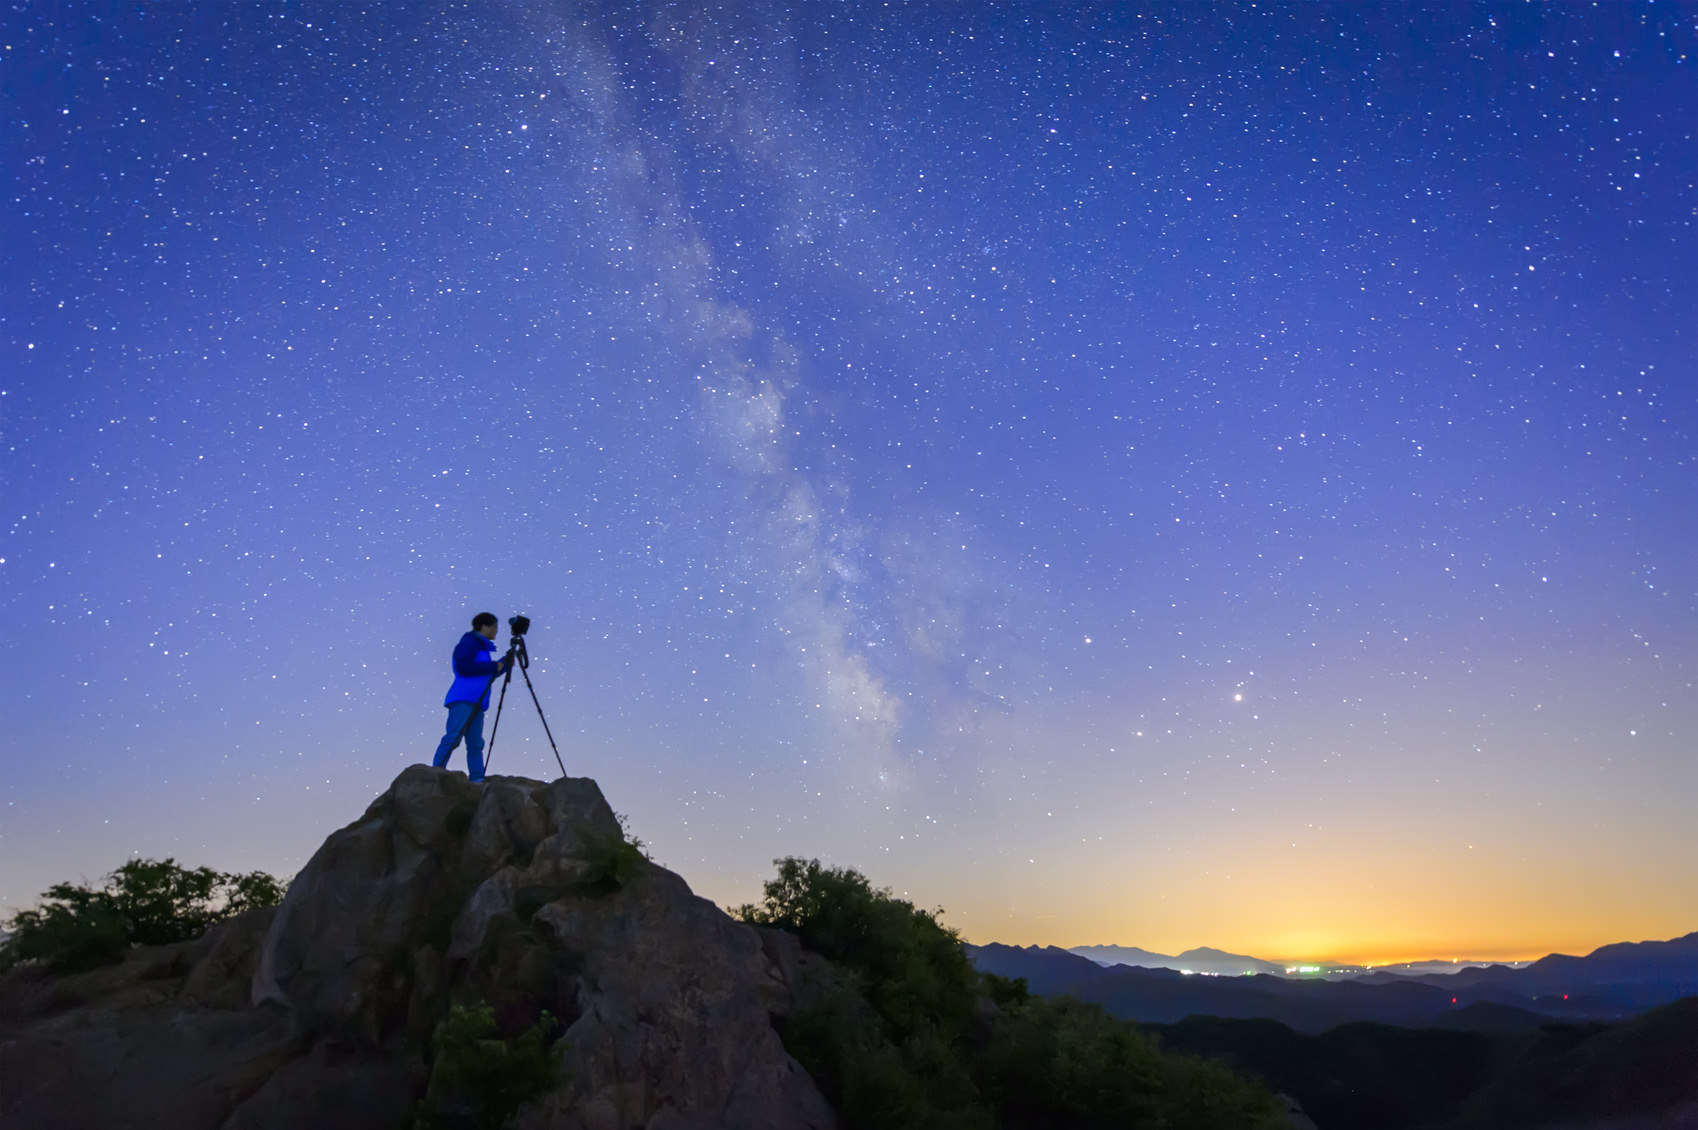 A Quick How-To Guide for Astrophotography Timelapse Videos